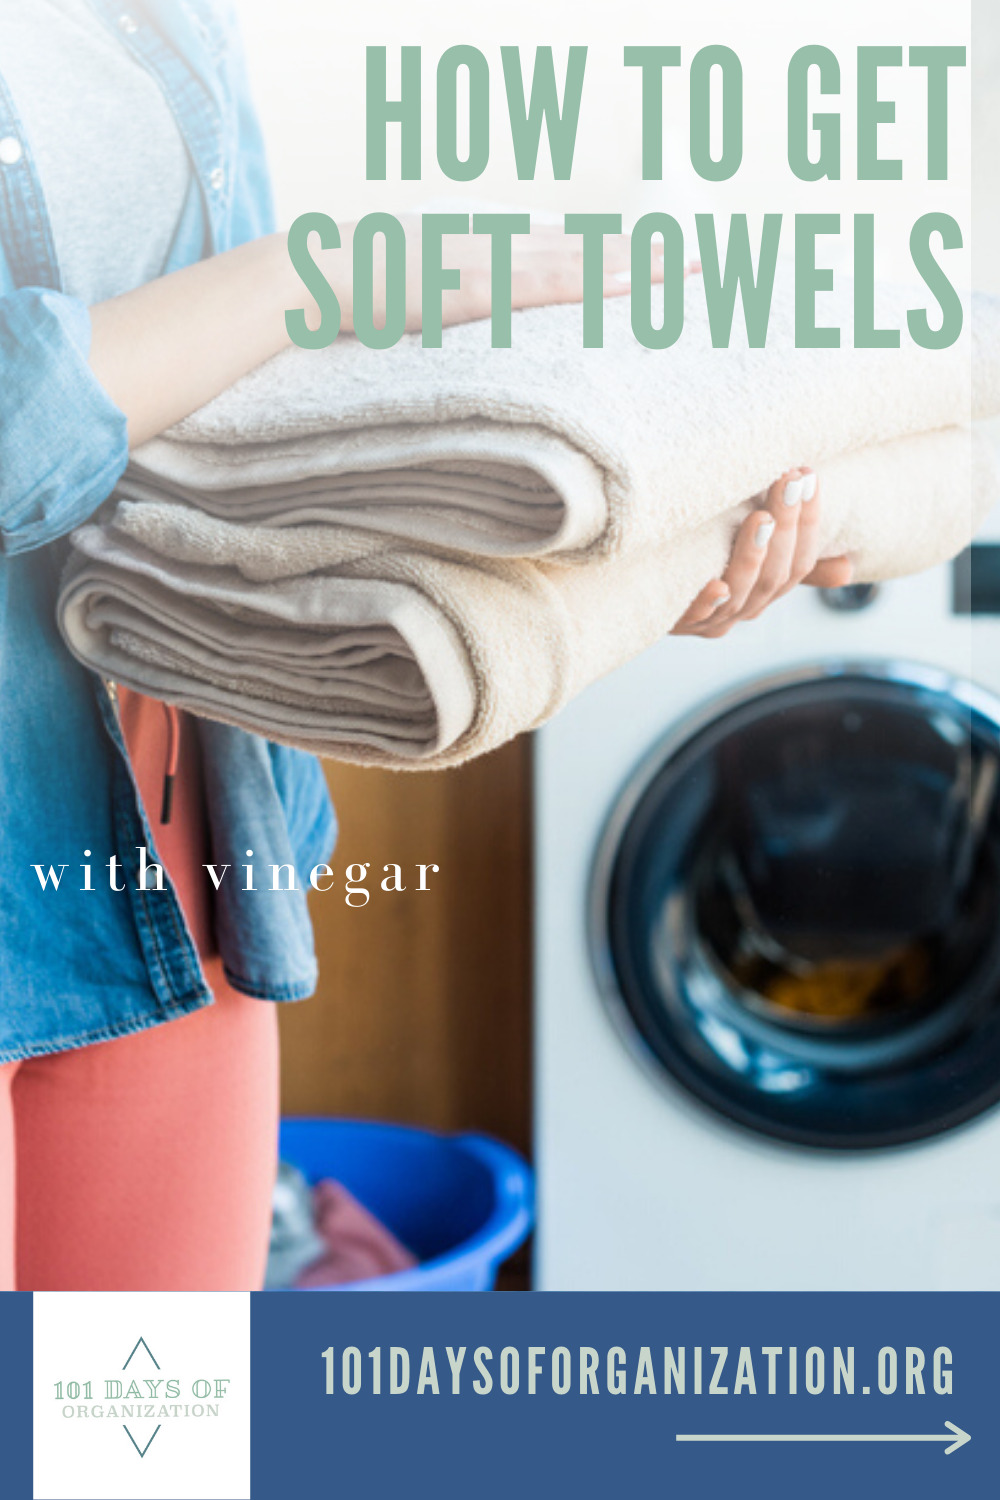 It's not secret that everybody and their dog likes soft towels. But, once they get old and rough, hardly anybody knows the secret about how to get soft towels. But, keep reading and we will share it with you. #laundrywithvinegar #howtogetsofttowels #101daysoforganization